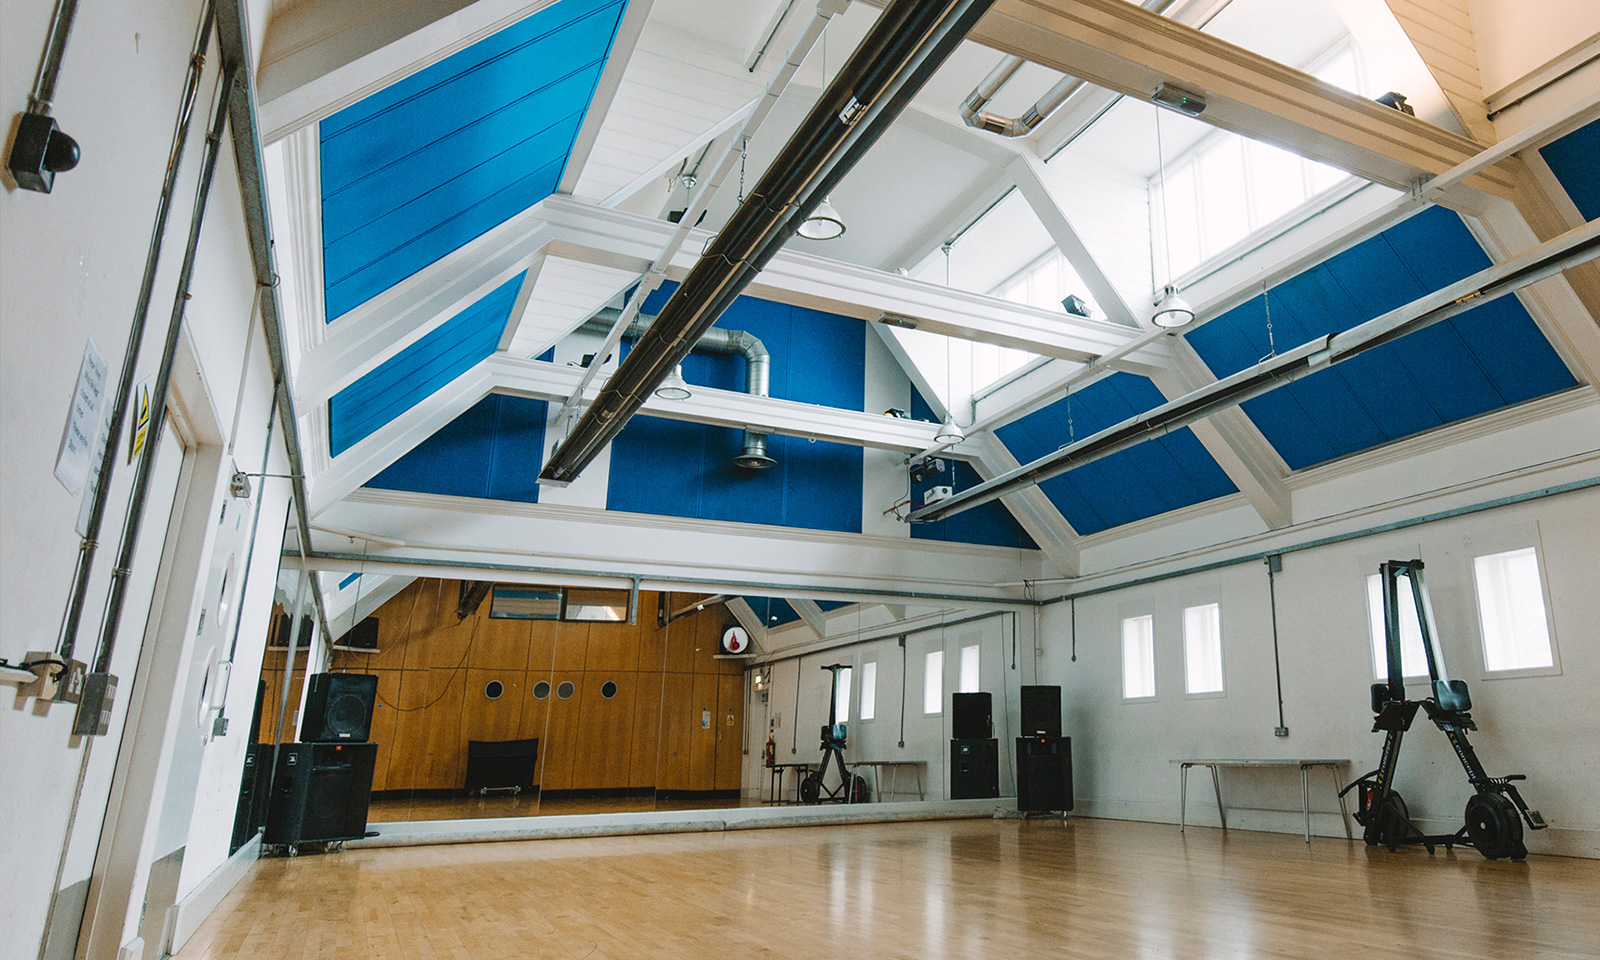 The Studio - With sprung floors, this room is especially great for dance and fitness classes. However, with a little decoration it also provides an elegant space for parties.